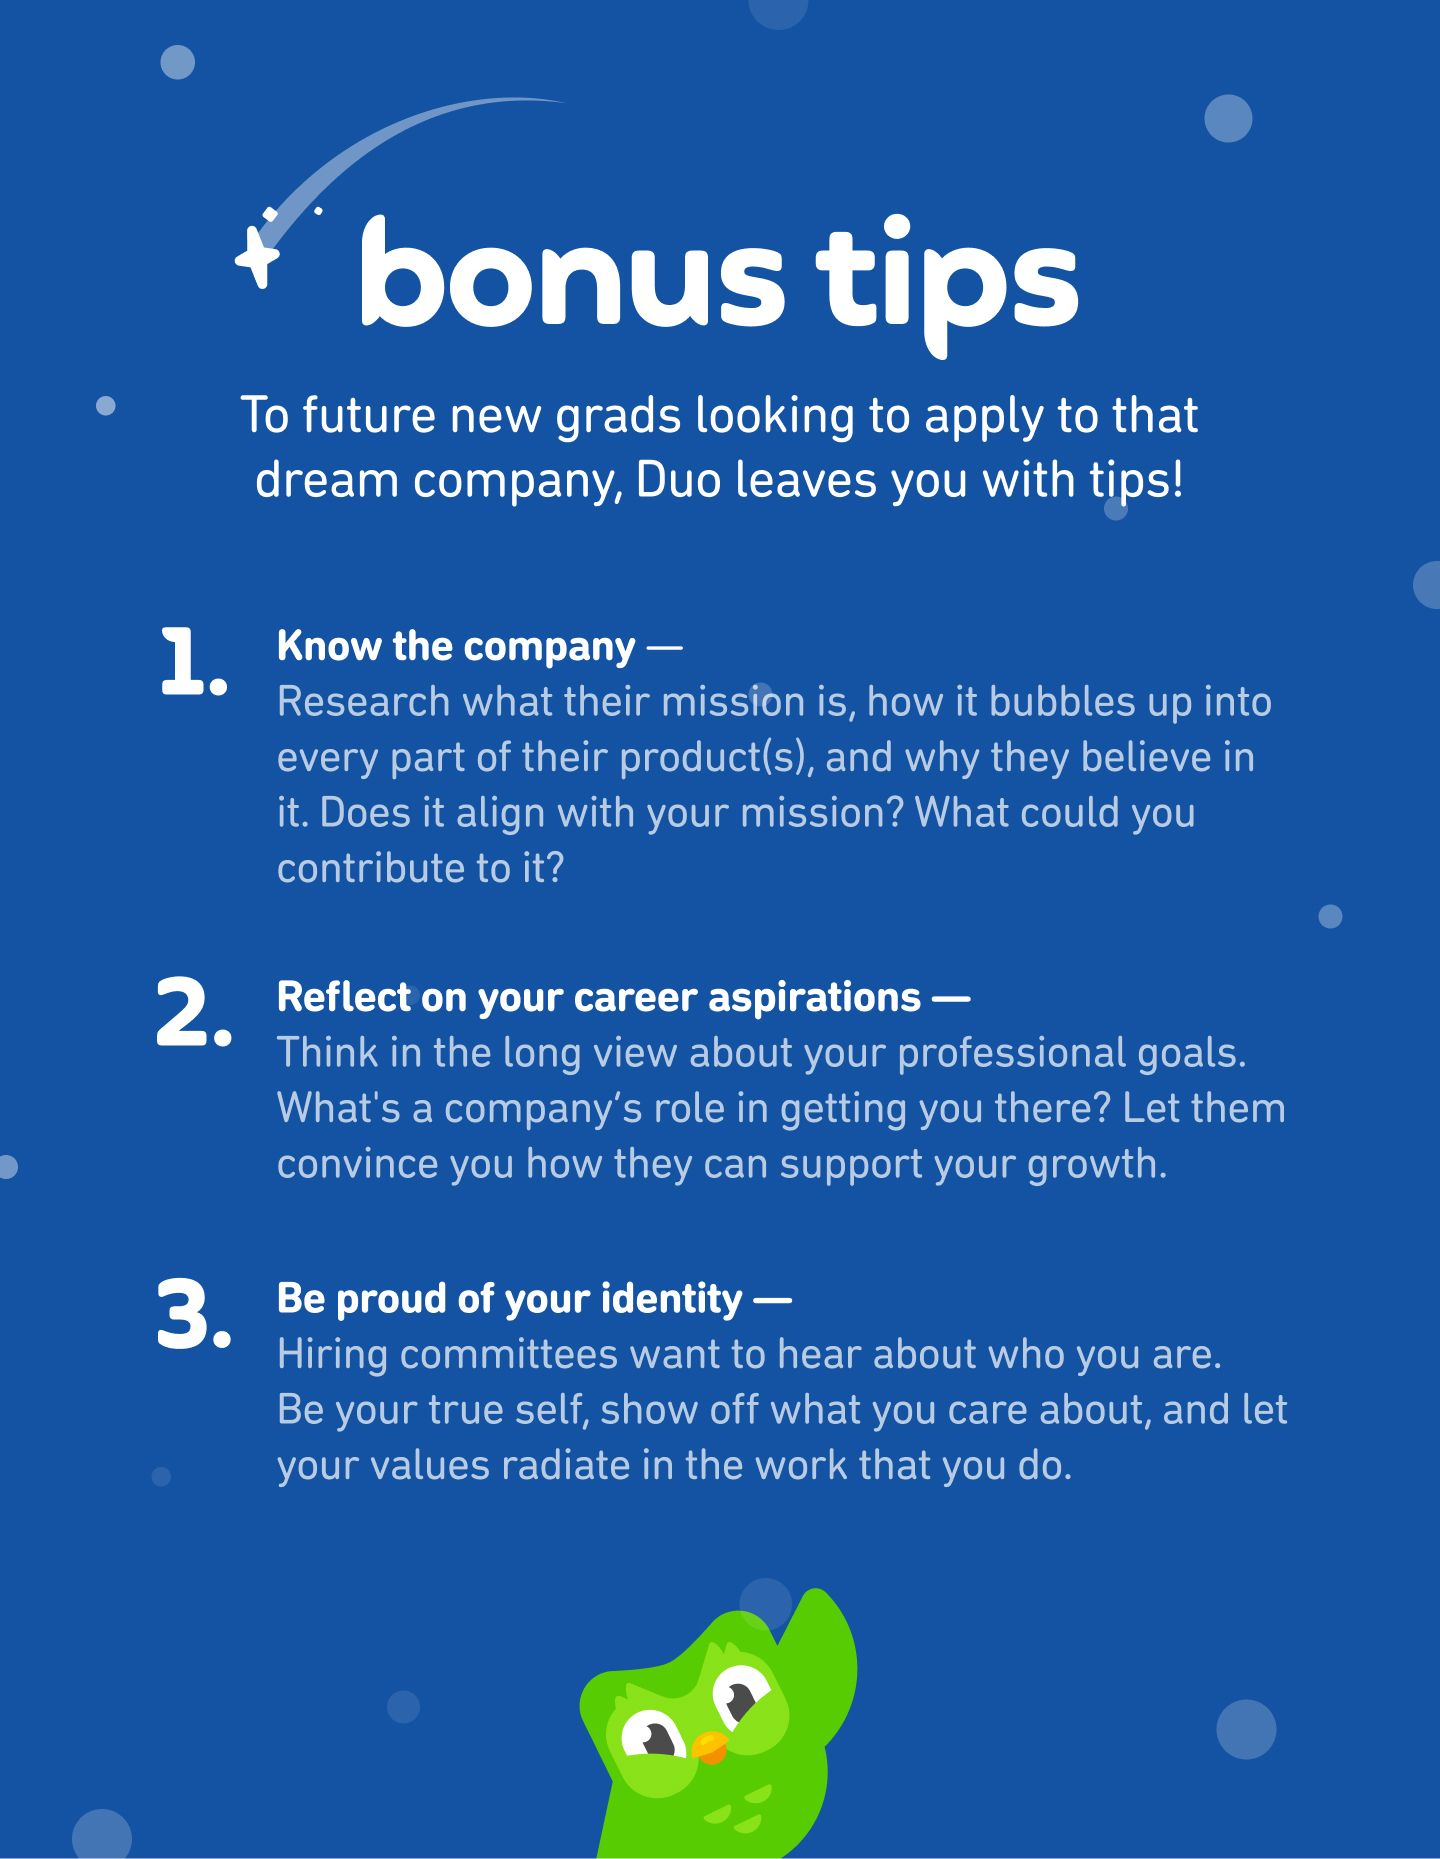 Bonus tips for job-searching new grad designers: (1) Know the company- Research what their mission is, how it bubbles up into every part of their product(s), and why they believe in it. Does it align with your mission? What could you contribute to it? (2) Reflect on your career aspirations — Think in the long view about your professional goals. What's a company's role in getting you there? Let them convince you how they can support your growth. (3) Be proud of your identity — Hiring committees want to hear about who you are. Be your true self, show off what you care about, and let your values radiate in the work that you do.